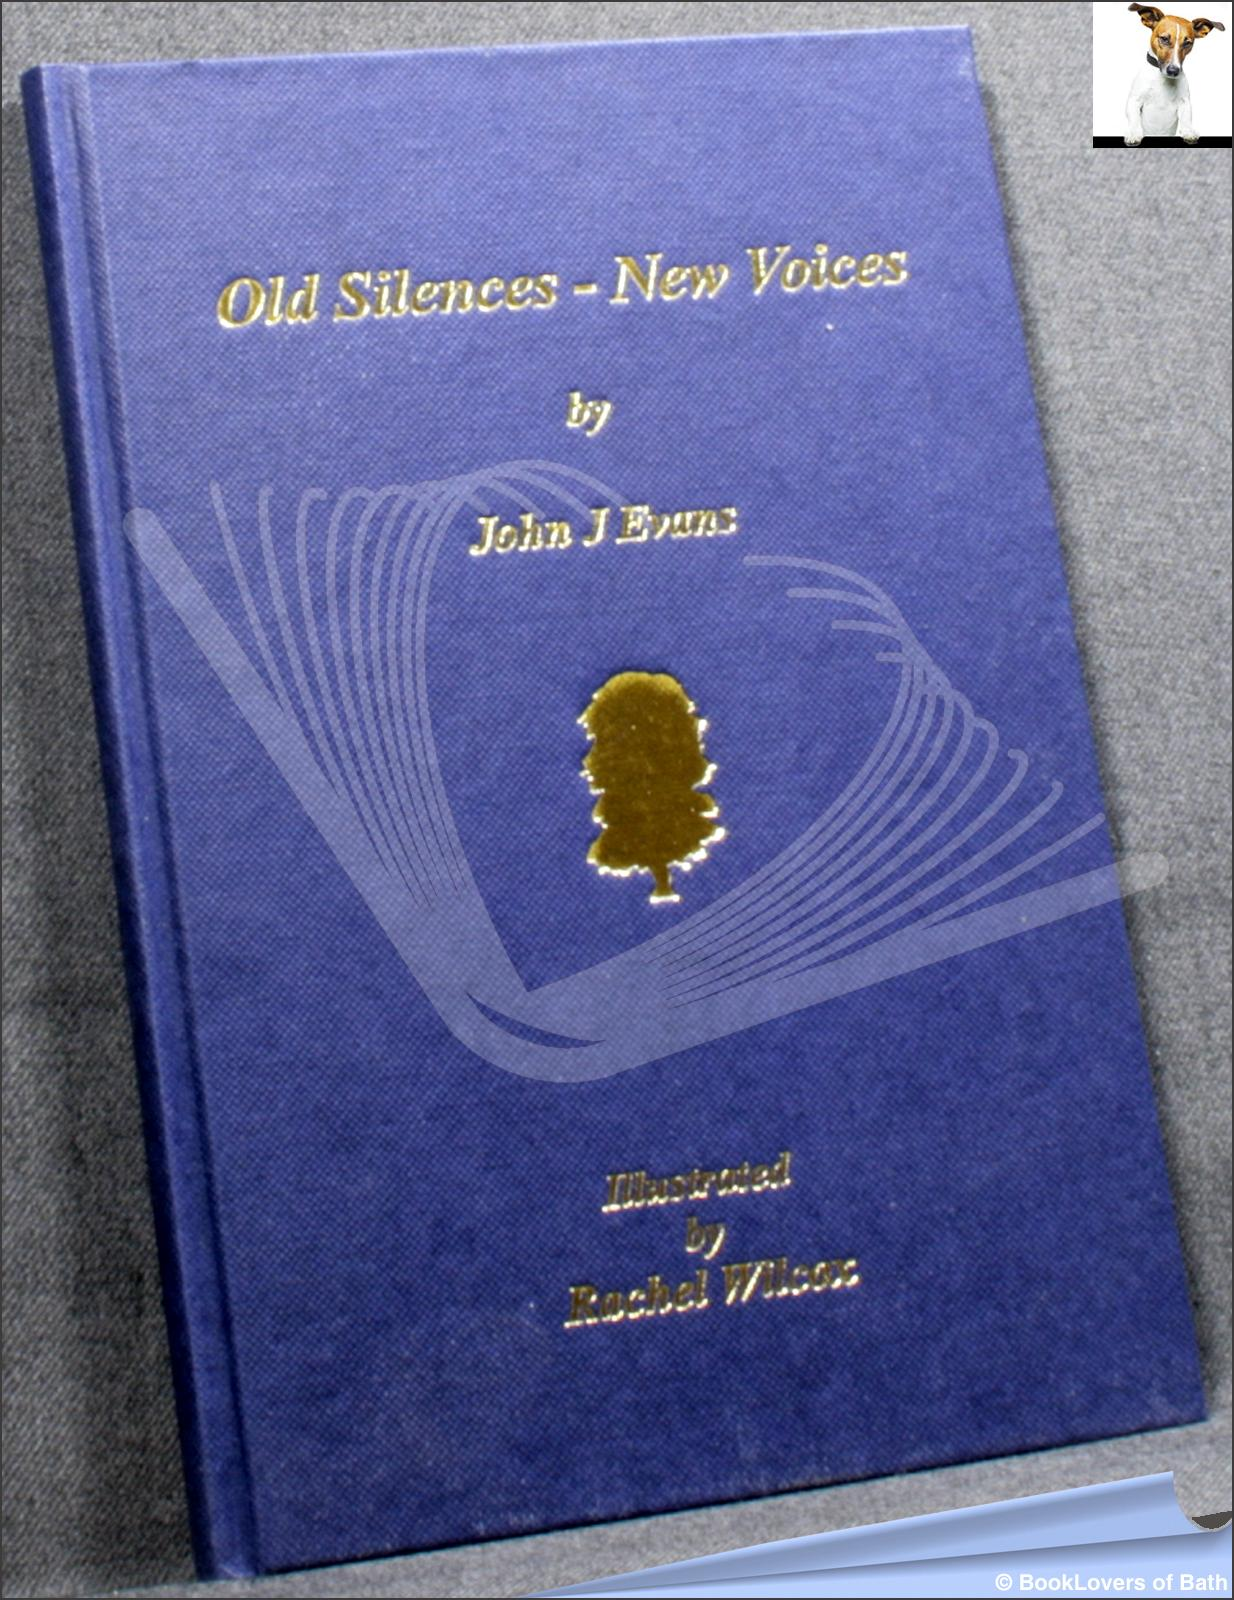 Old Silences - New Voices - John J. Evans